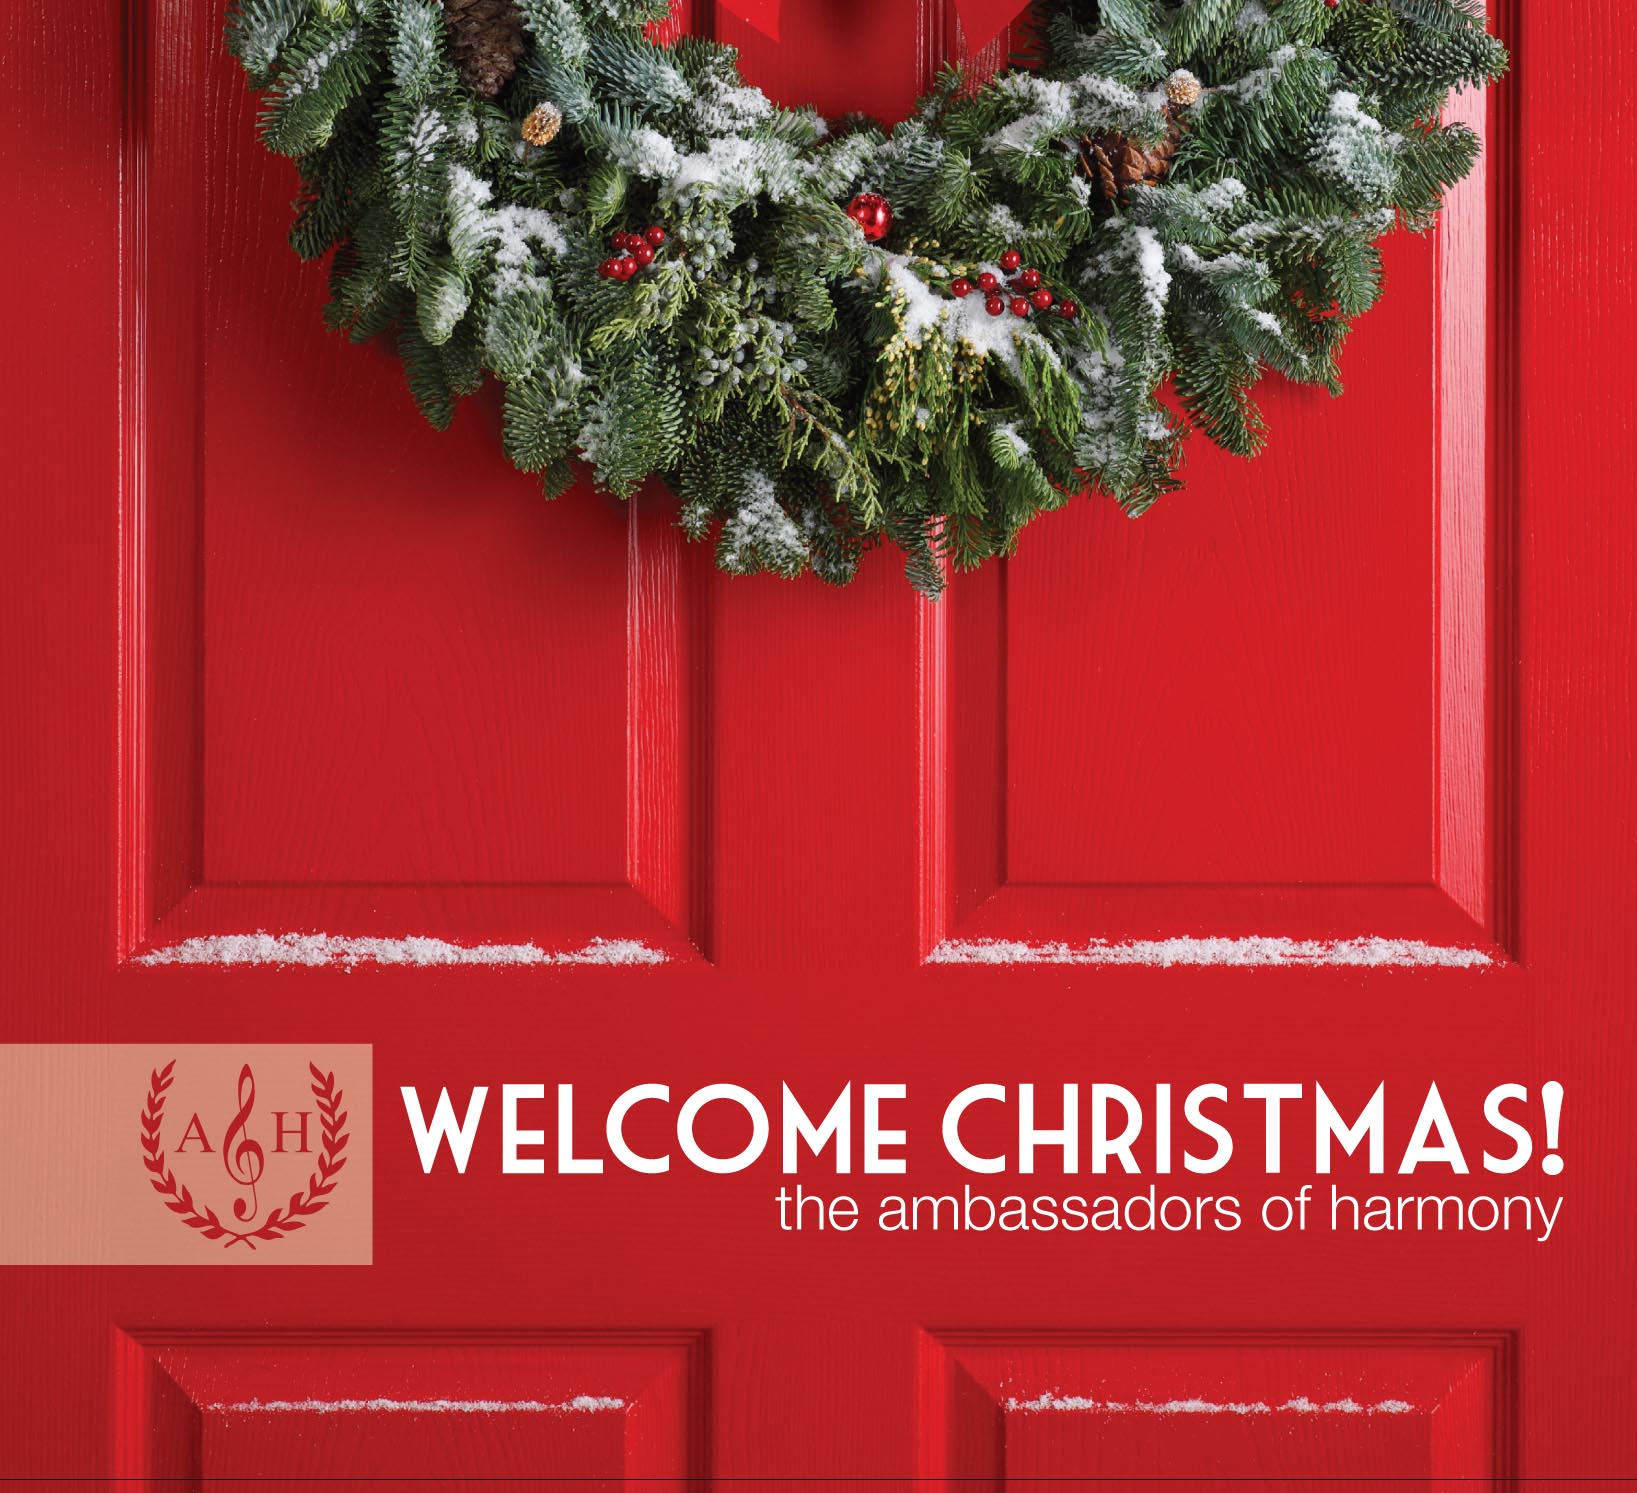 Welcome To Christmas.Digital Download Welcome Christmas The Ambassadors Of Harmony